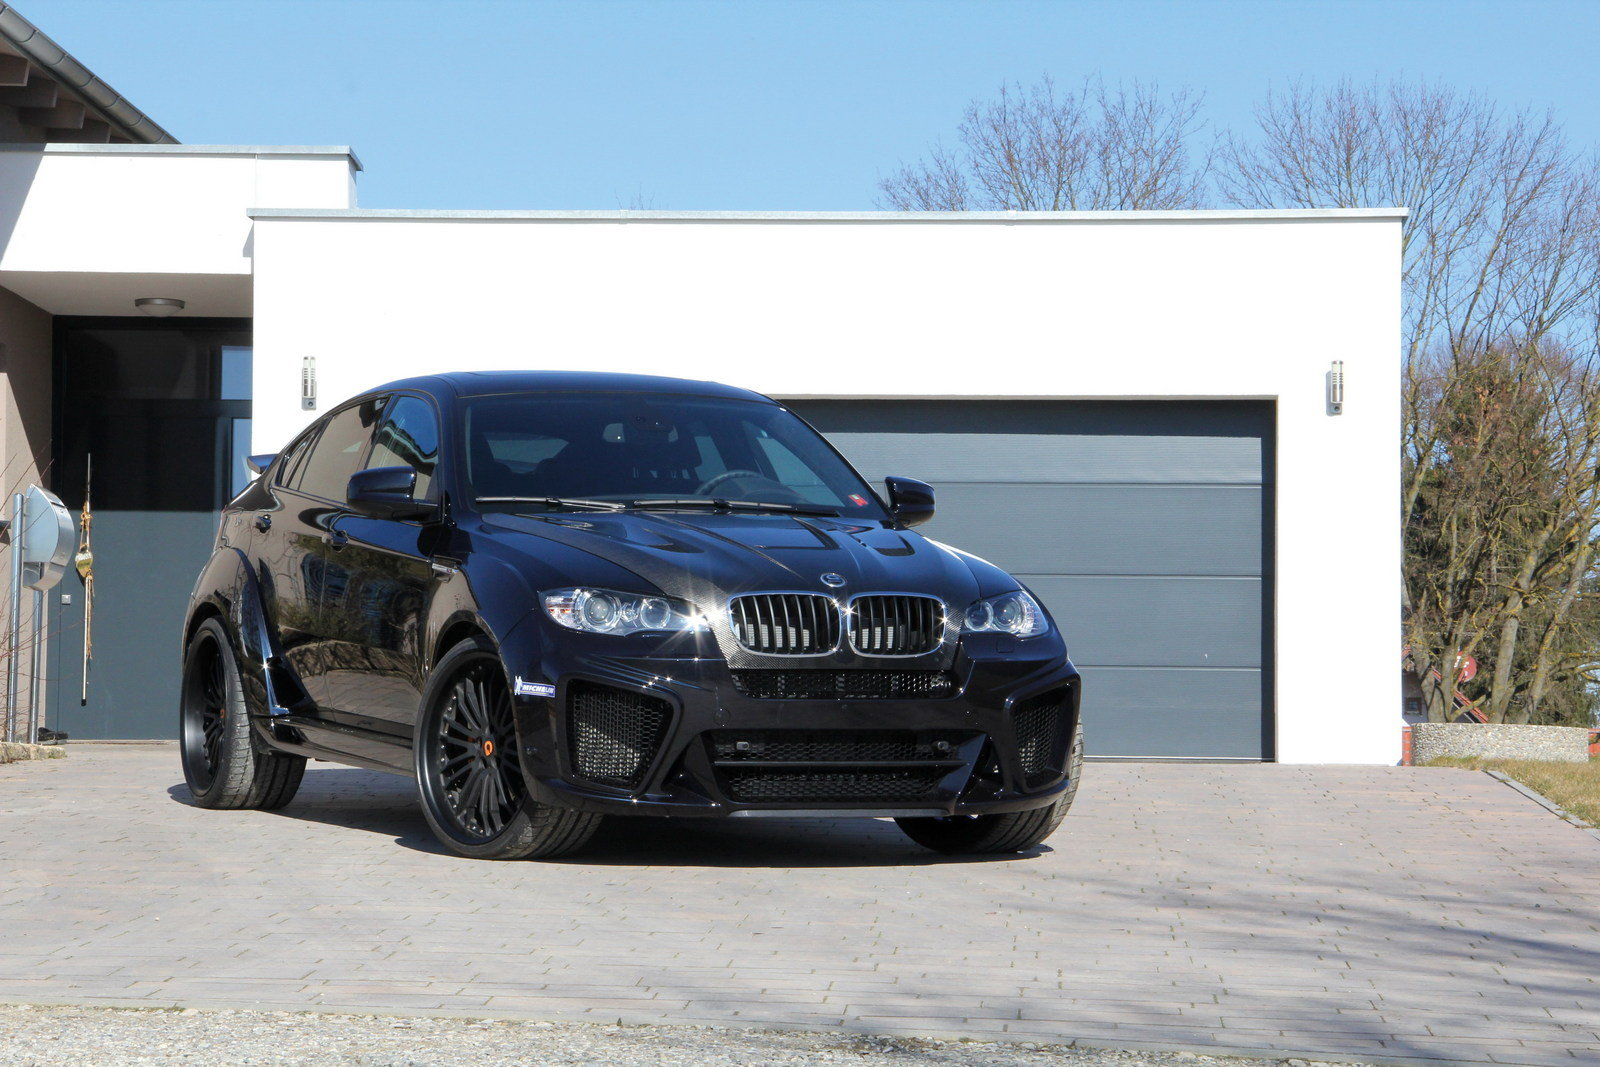 2014 bmw x6 m typhoon by g power review top speed. Black Bedroom Furniture Sets. Home Design Ideas